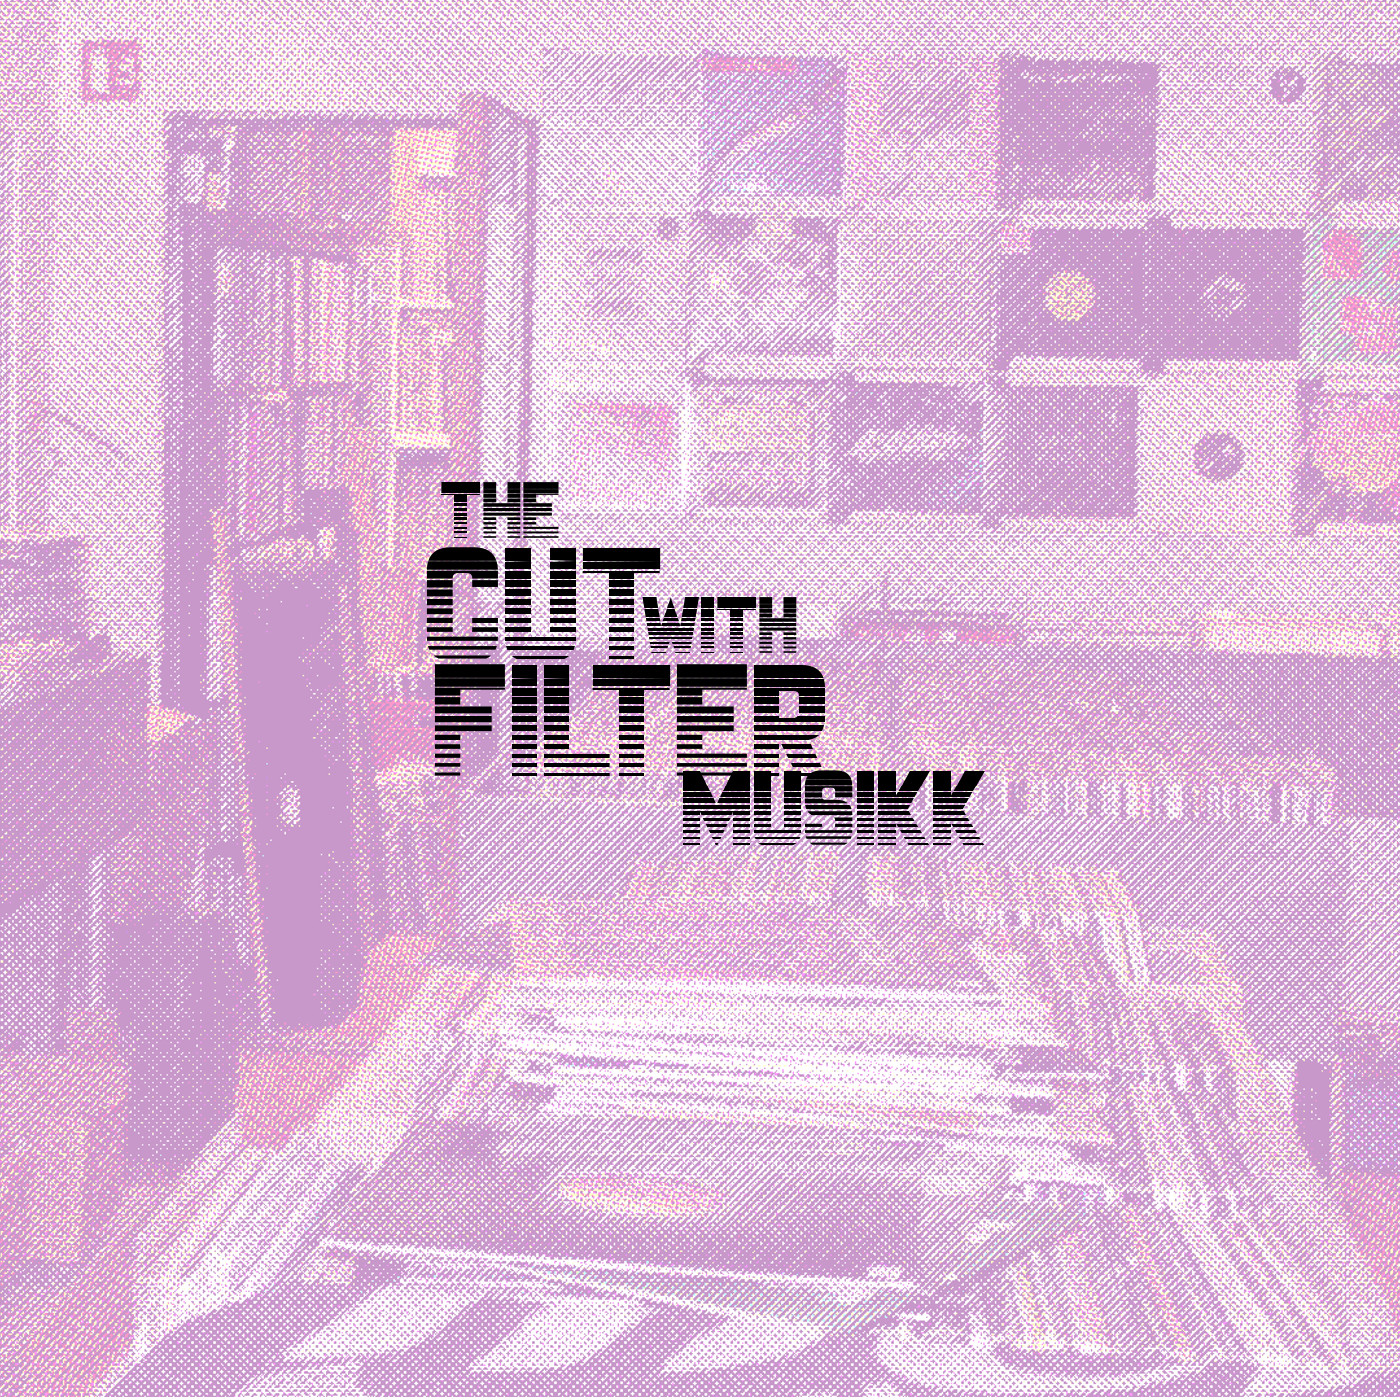 The cut with Filter Musikk